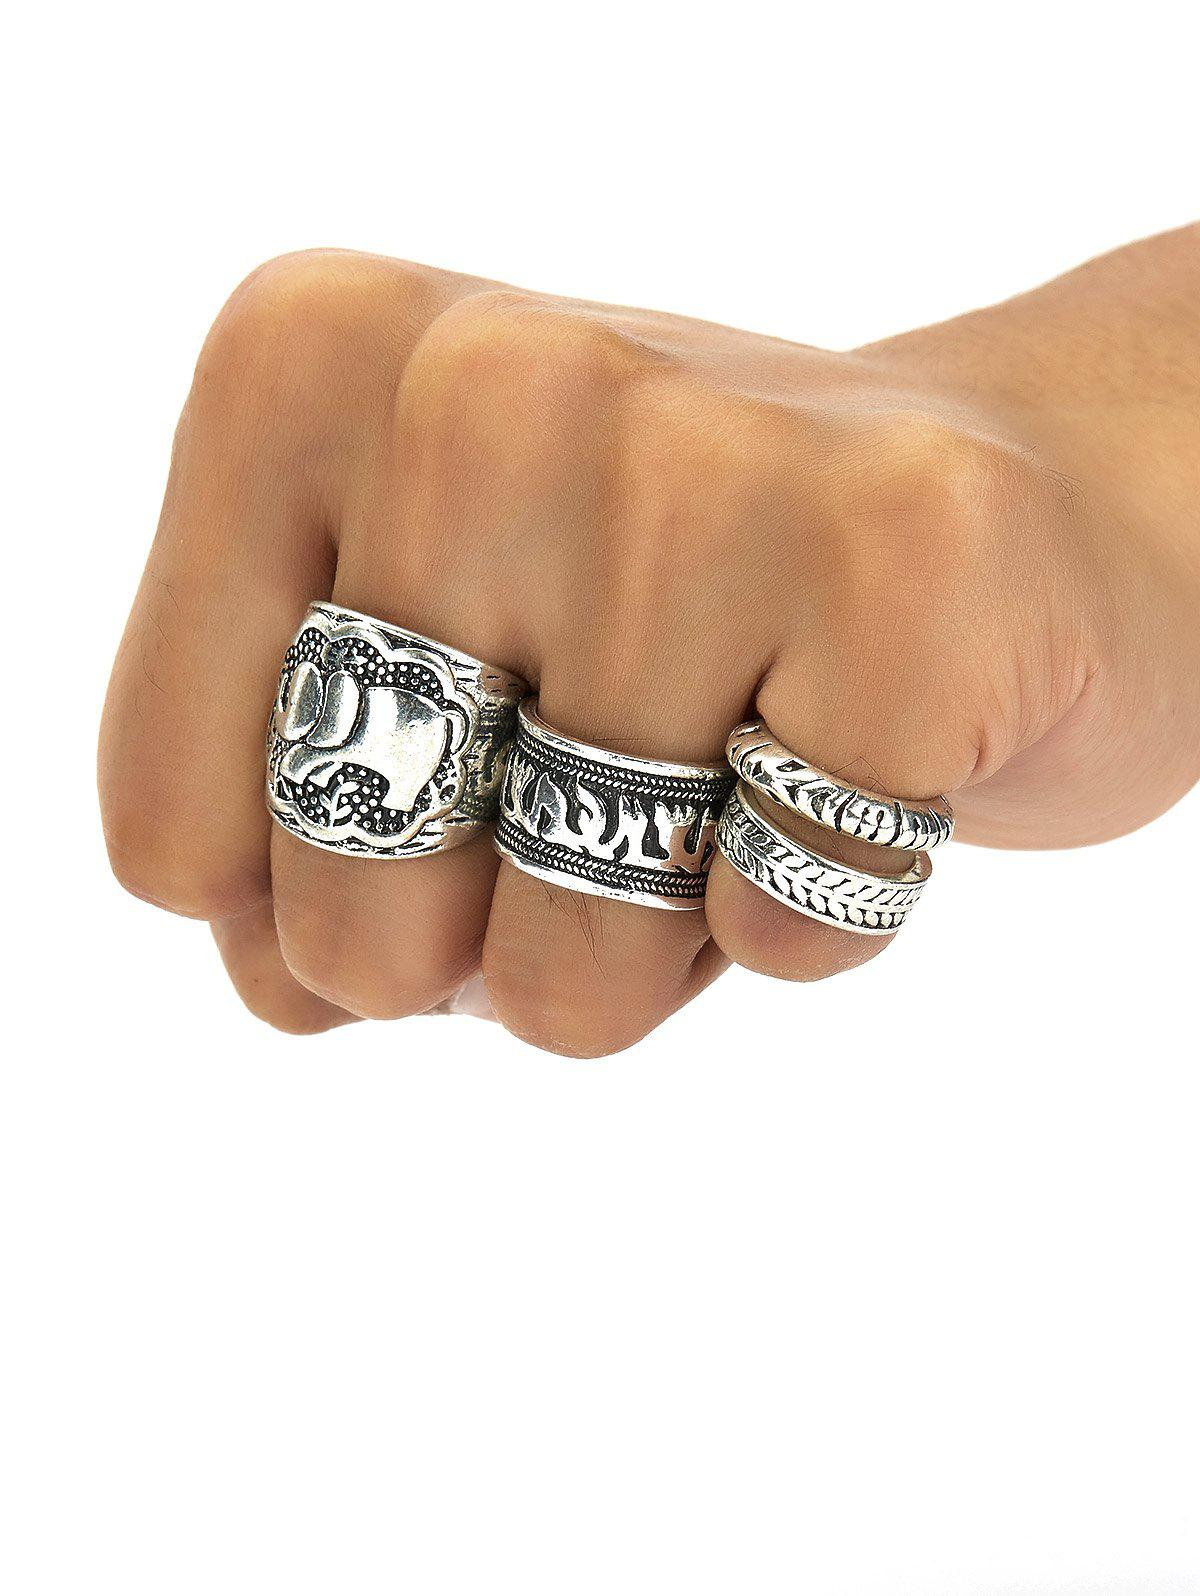 Fancy A Set of Characteristic Retro Style Carving Pattern Women's Rings